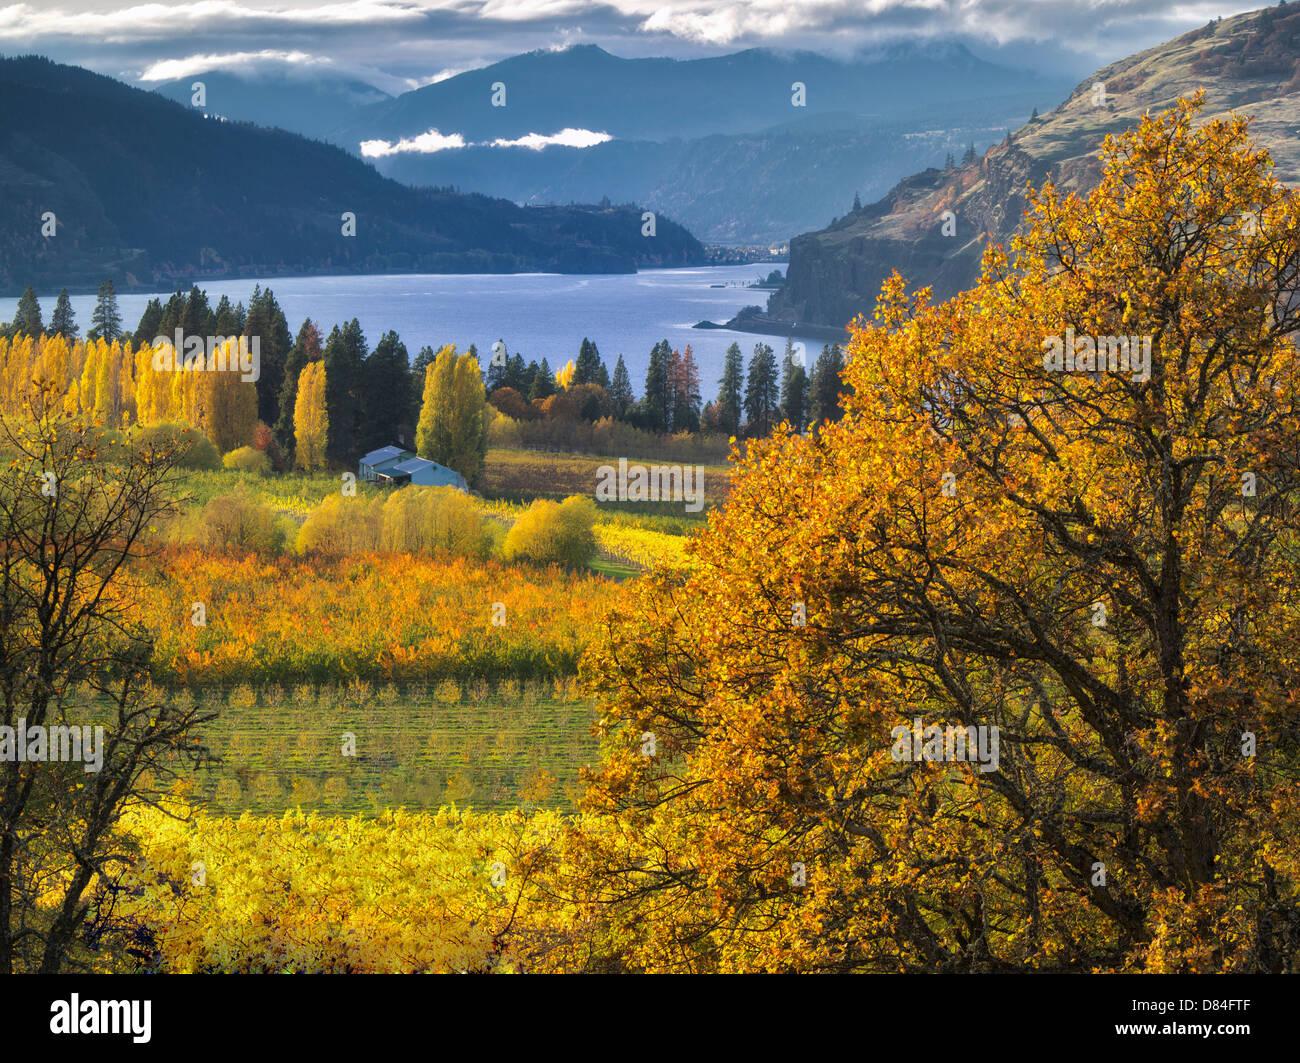 Verger en couleurs d'automne et le fleuve Columbia. Columbia River Gorge National Scenic Area. Oregon Photo Stock